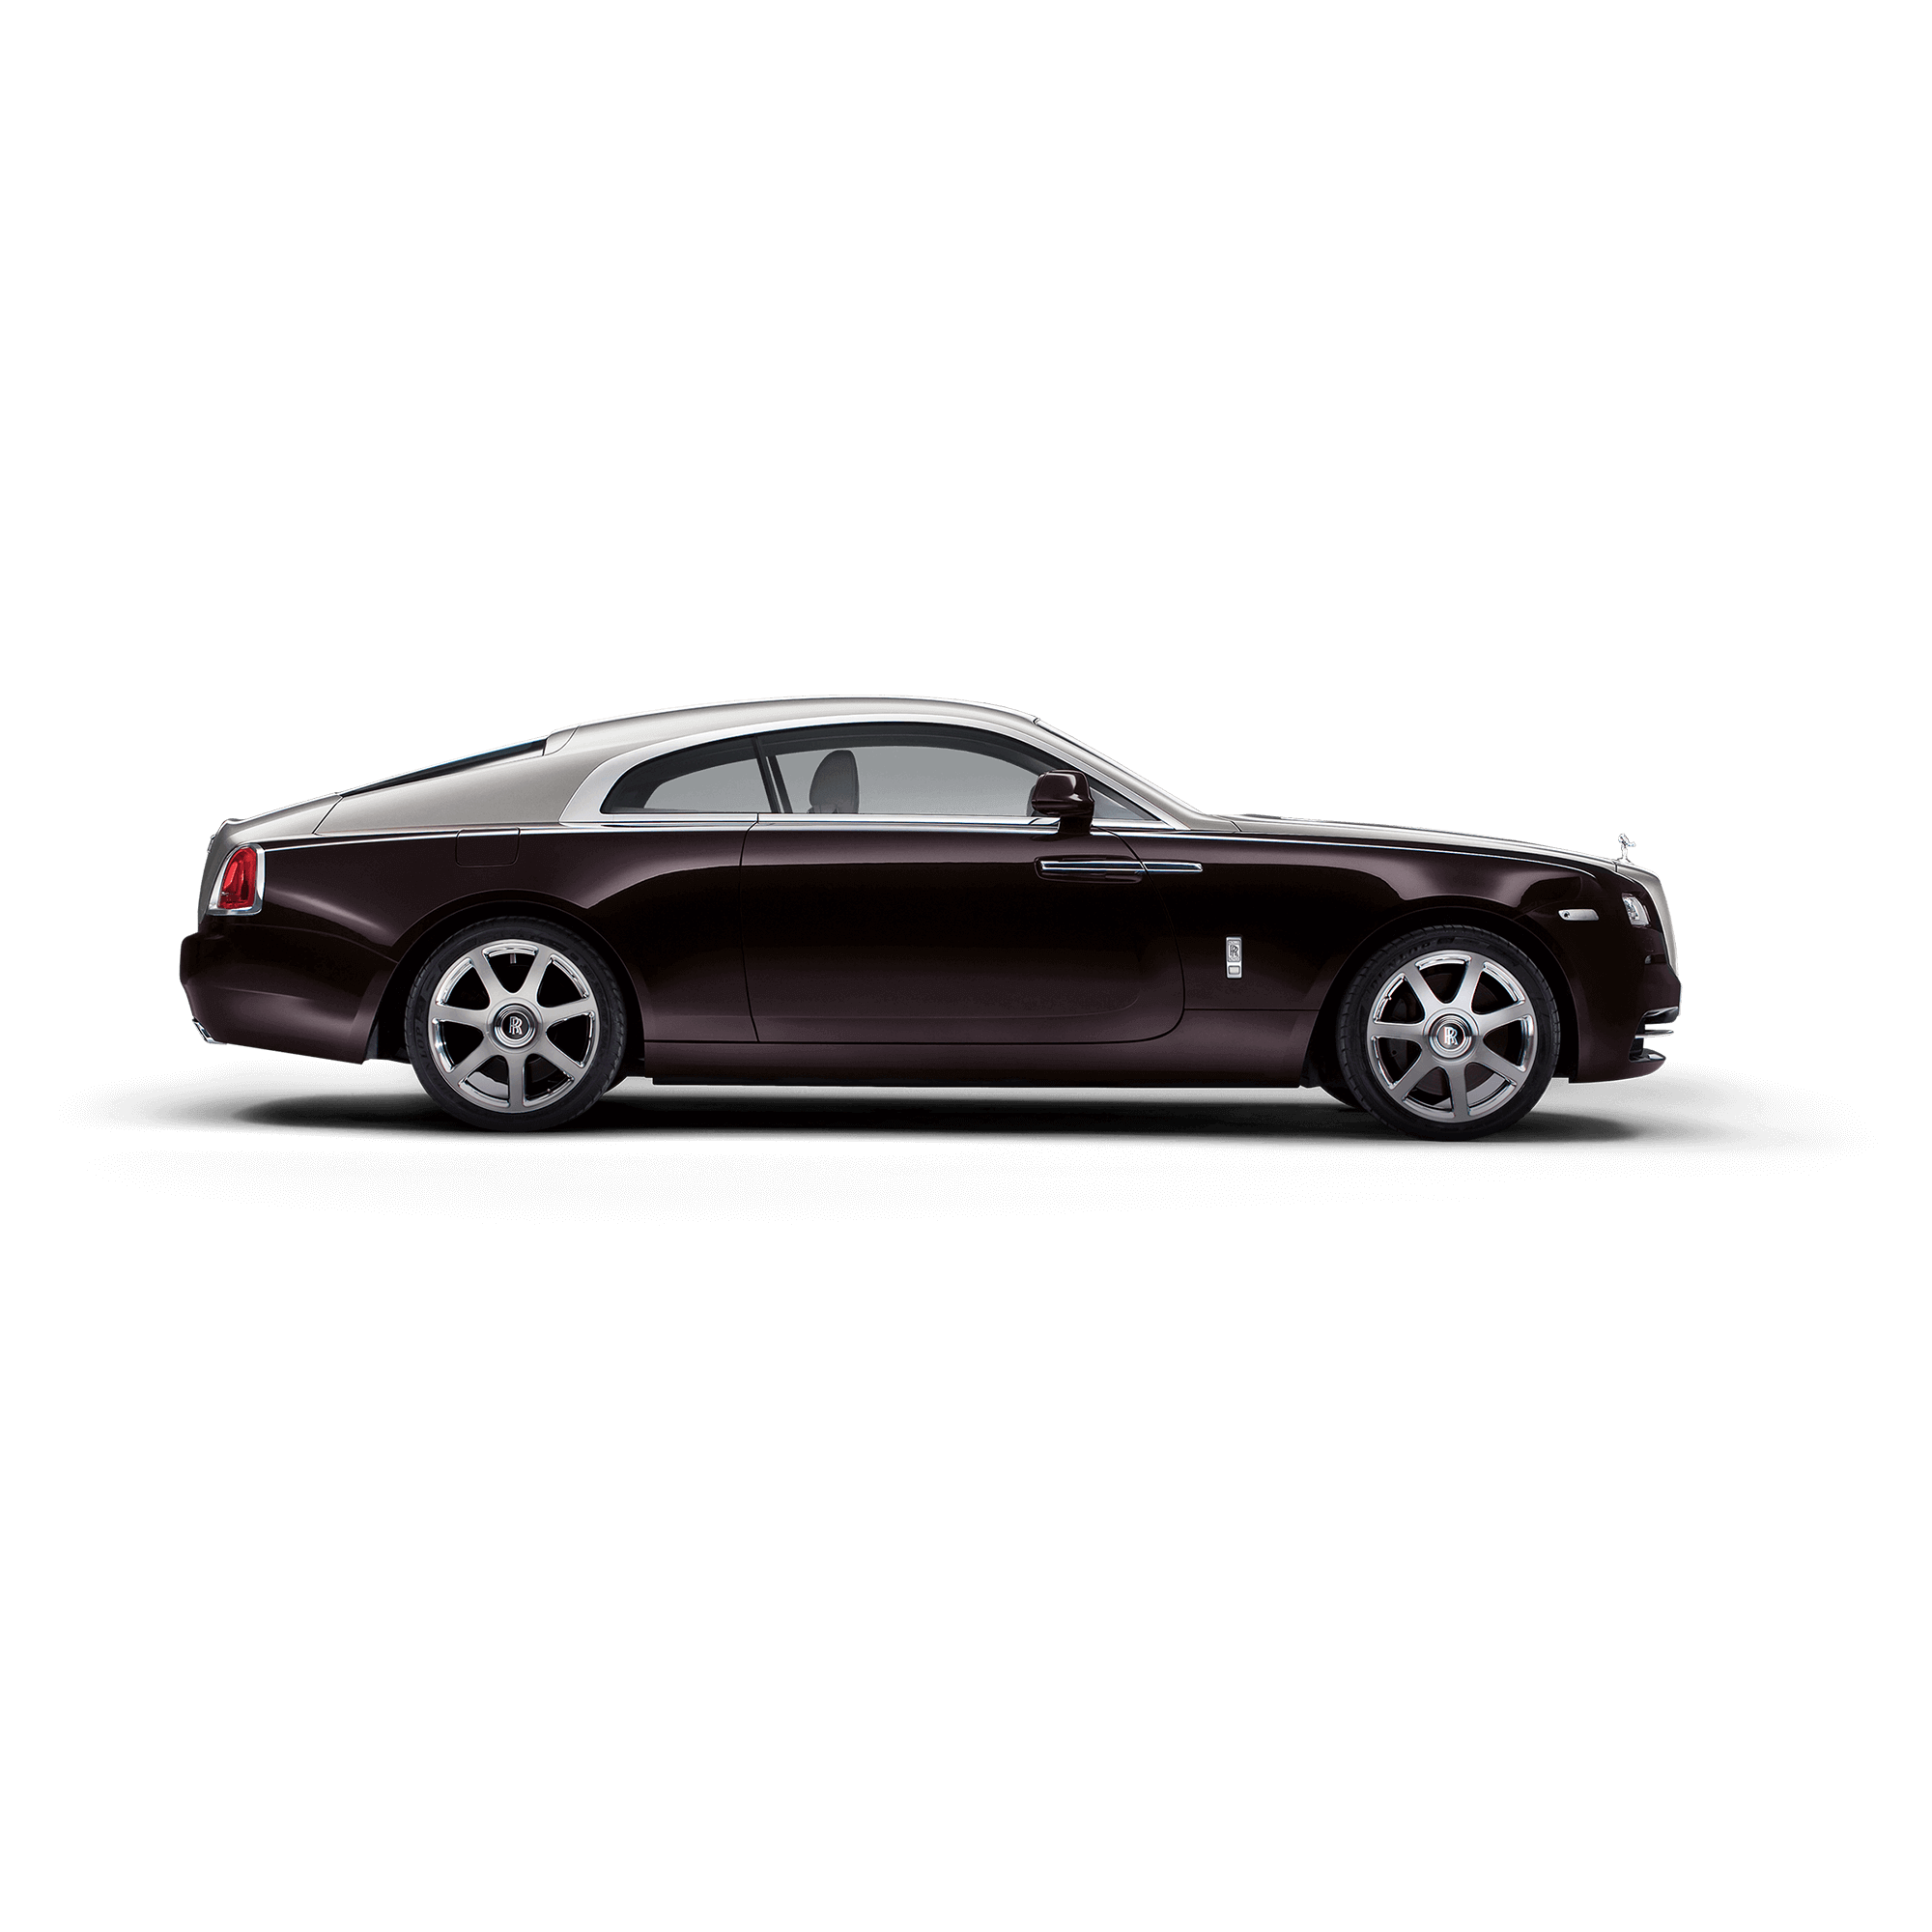 2017 Rolls Royce Wraith Camshaft: Rolls Royce Wraith Features & Specifications